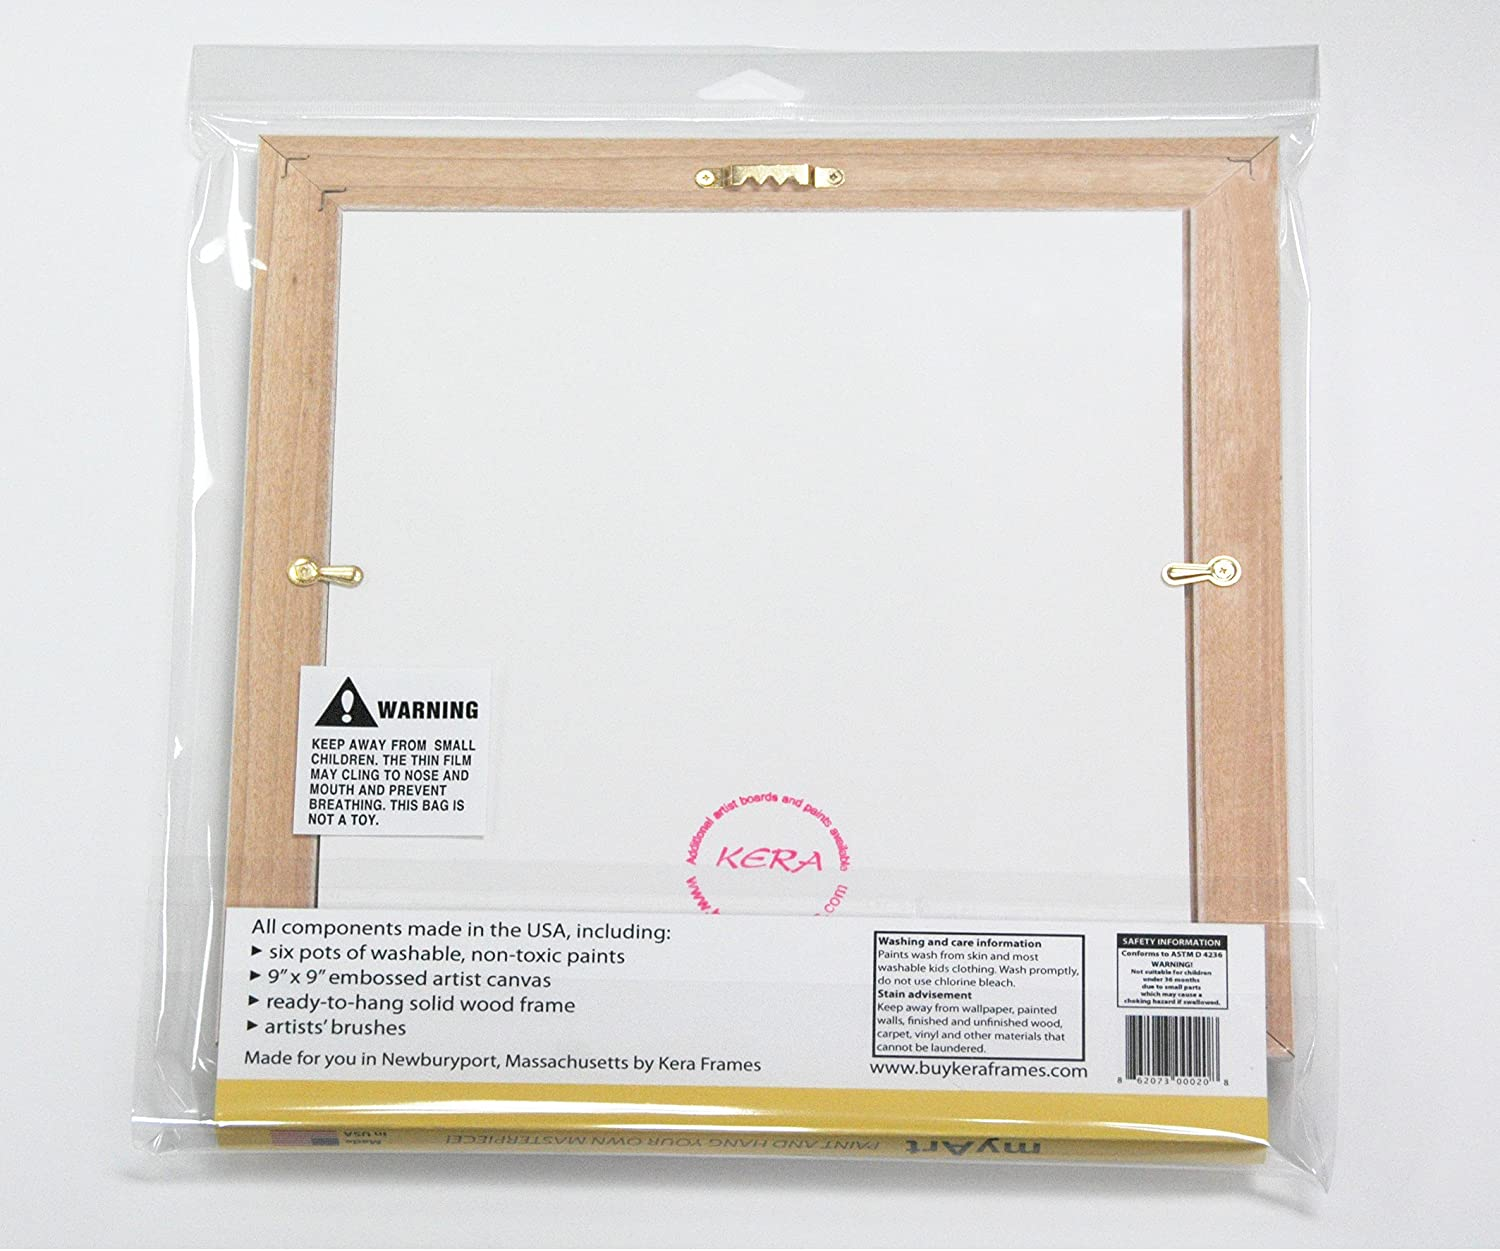 Amazon my art by kera frames kids painting and frame kit amazon my art by kera frames kids painting and frame kit ready to hang made in the usa toys games jeuxipadfo Gallery